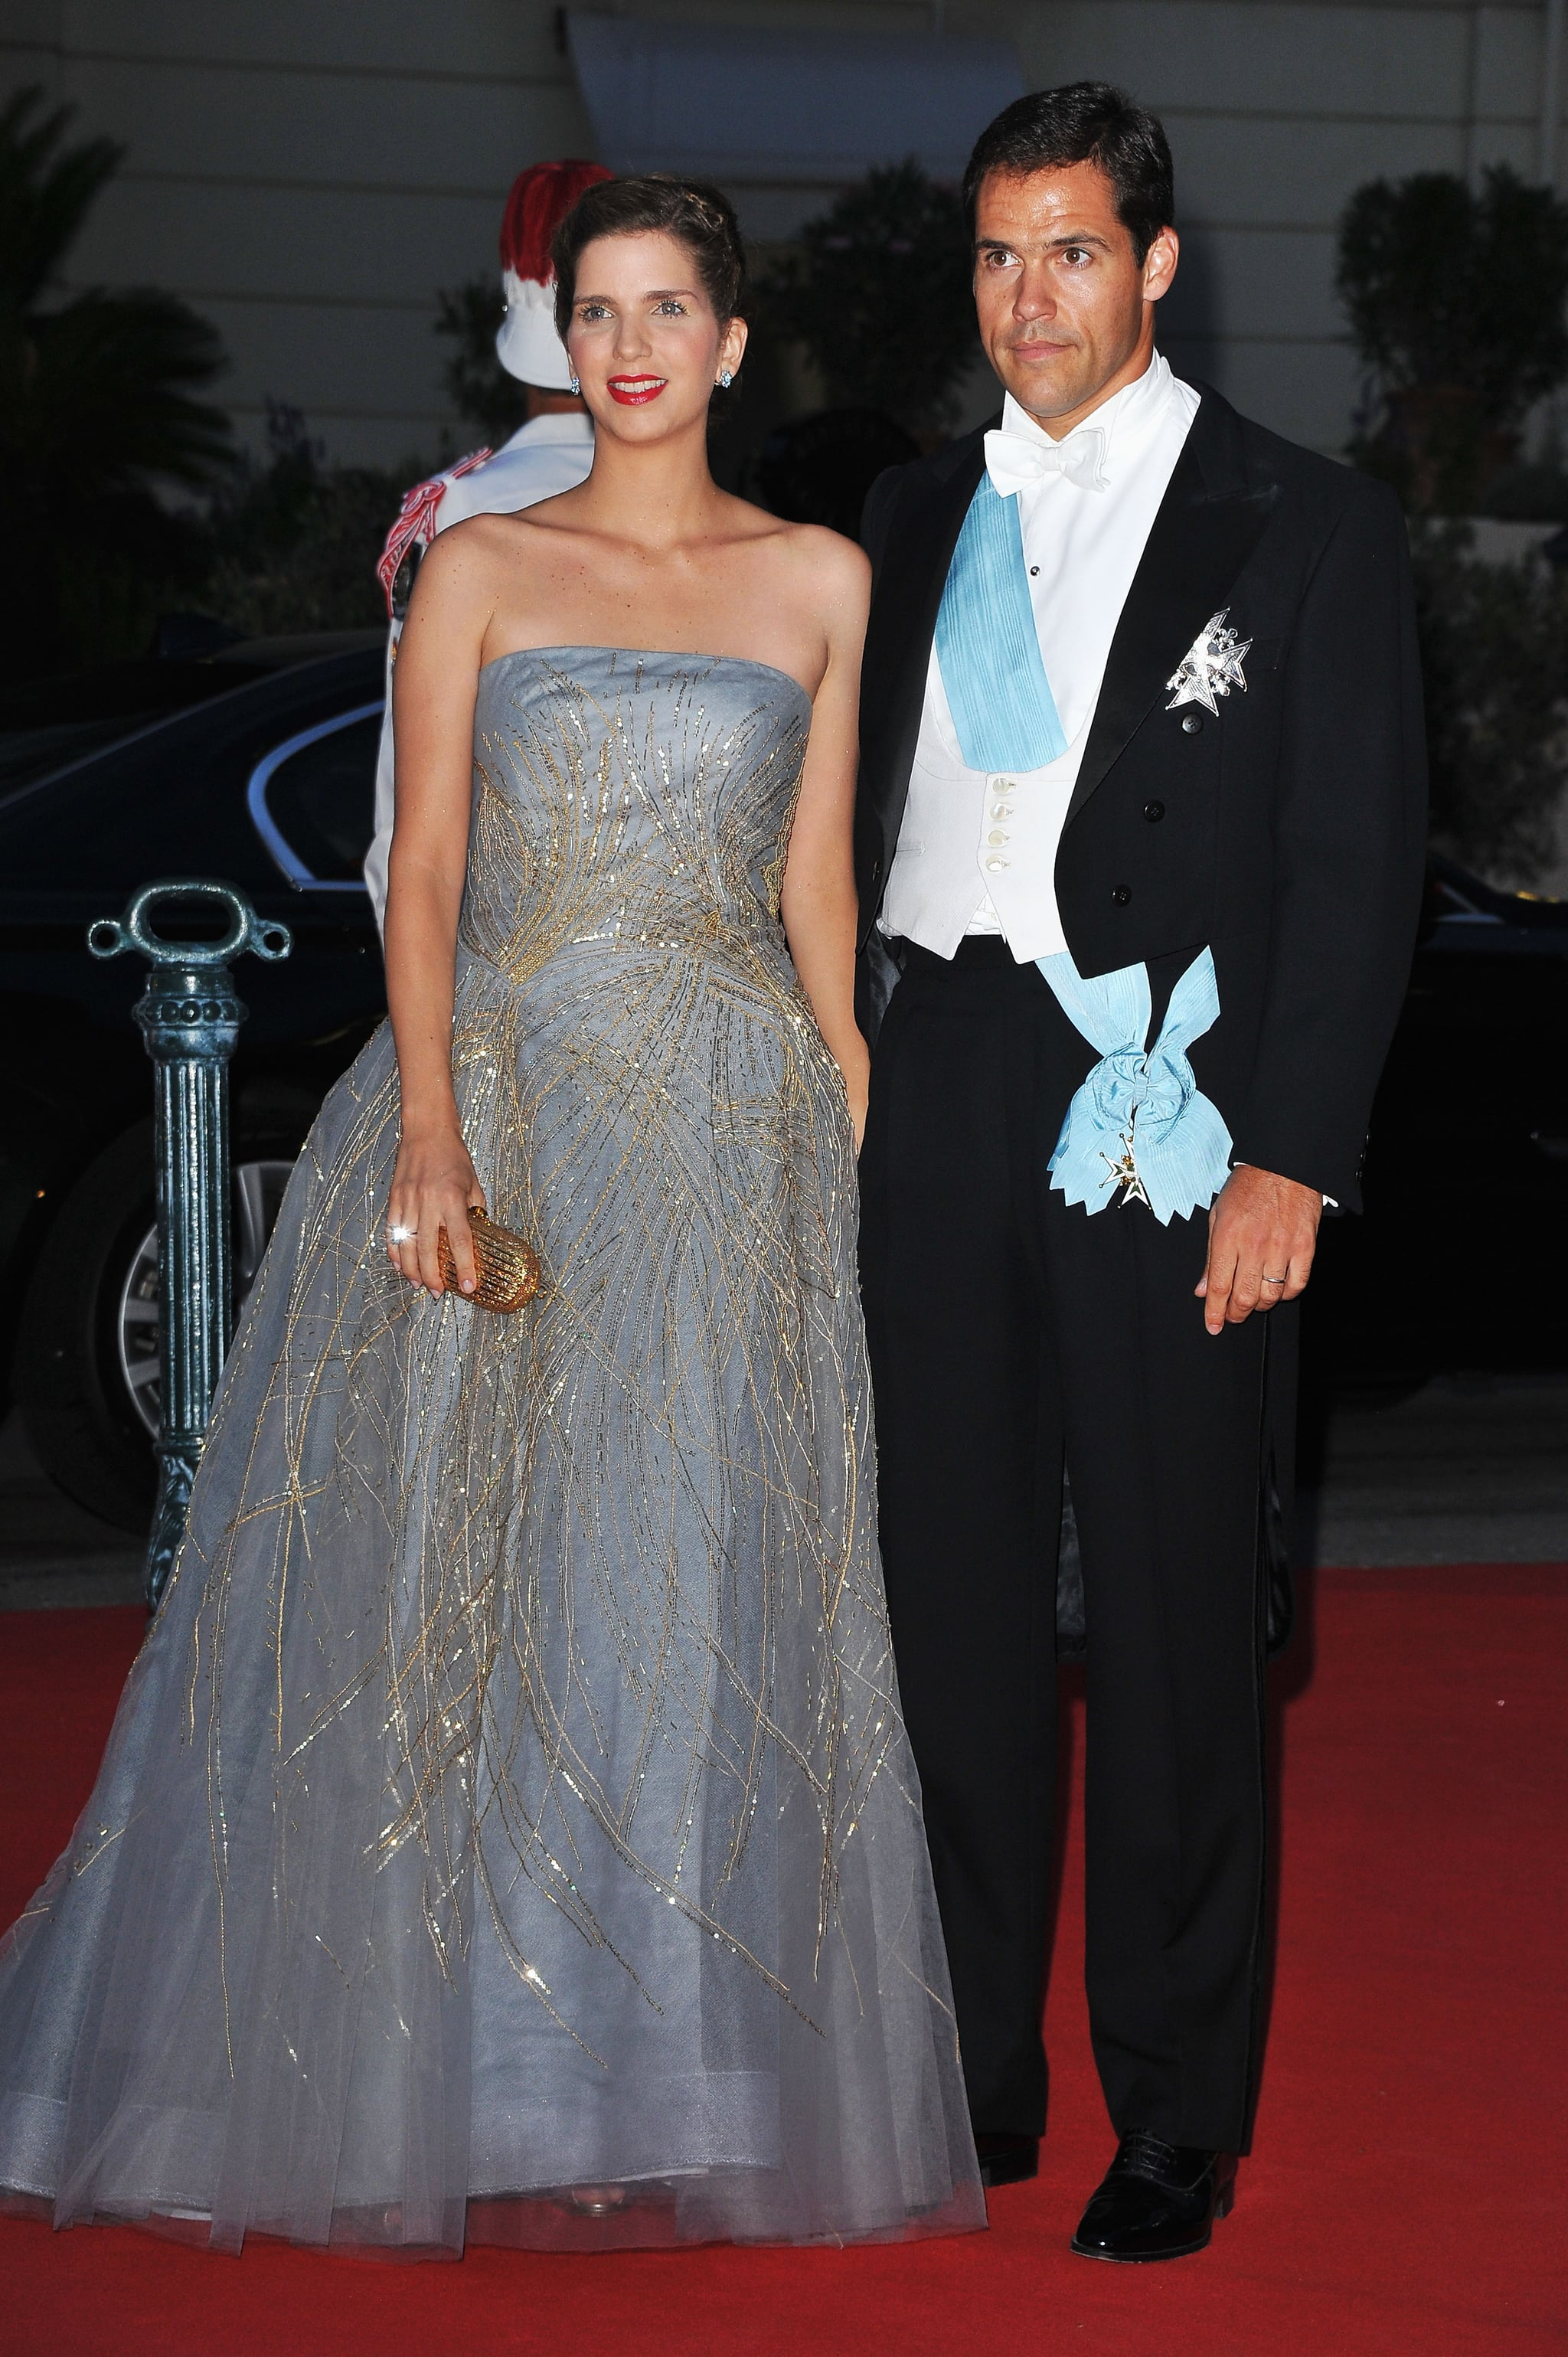 Maria Margarita and Louis de Bourbon attended a dinner at Opera terraces after the religious wedding ceremony of Prince Albert II of Monaco and Princess Charlene of Monaco.